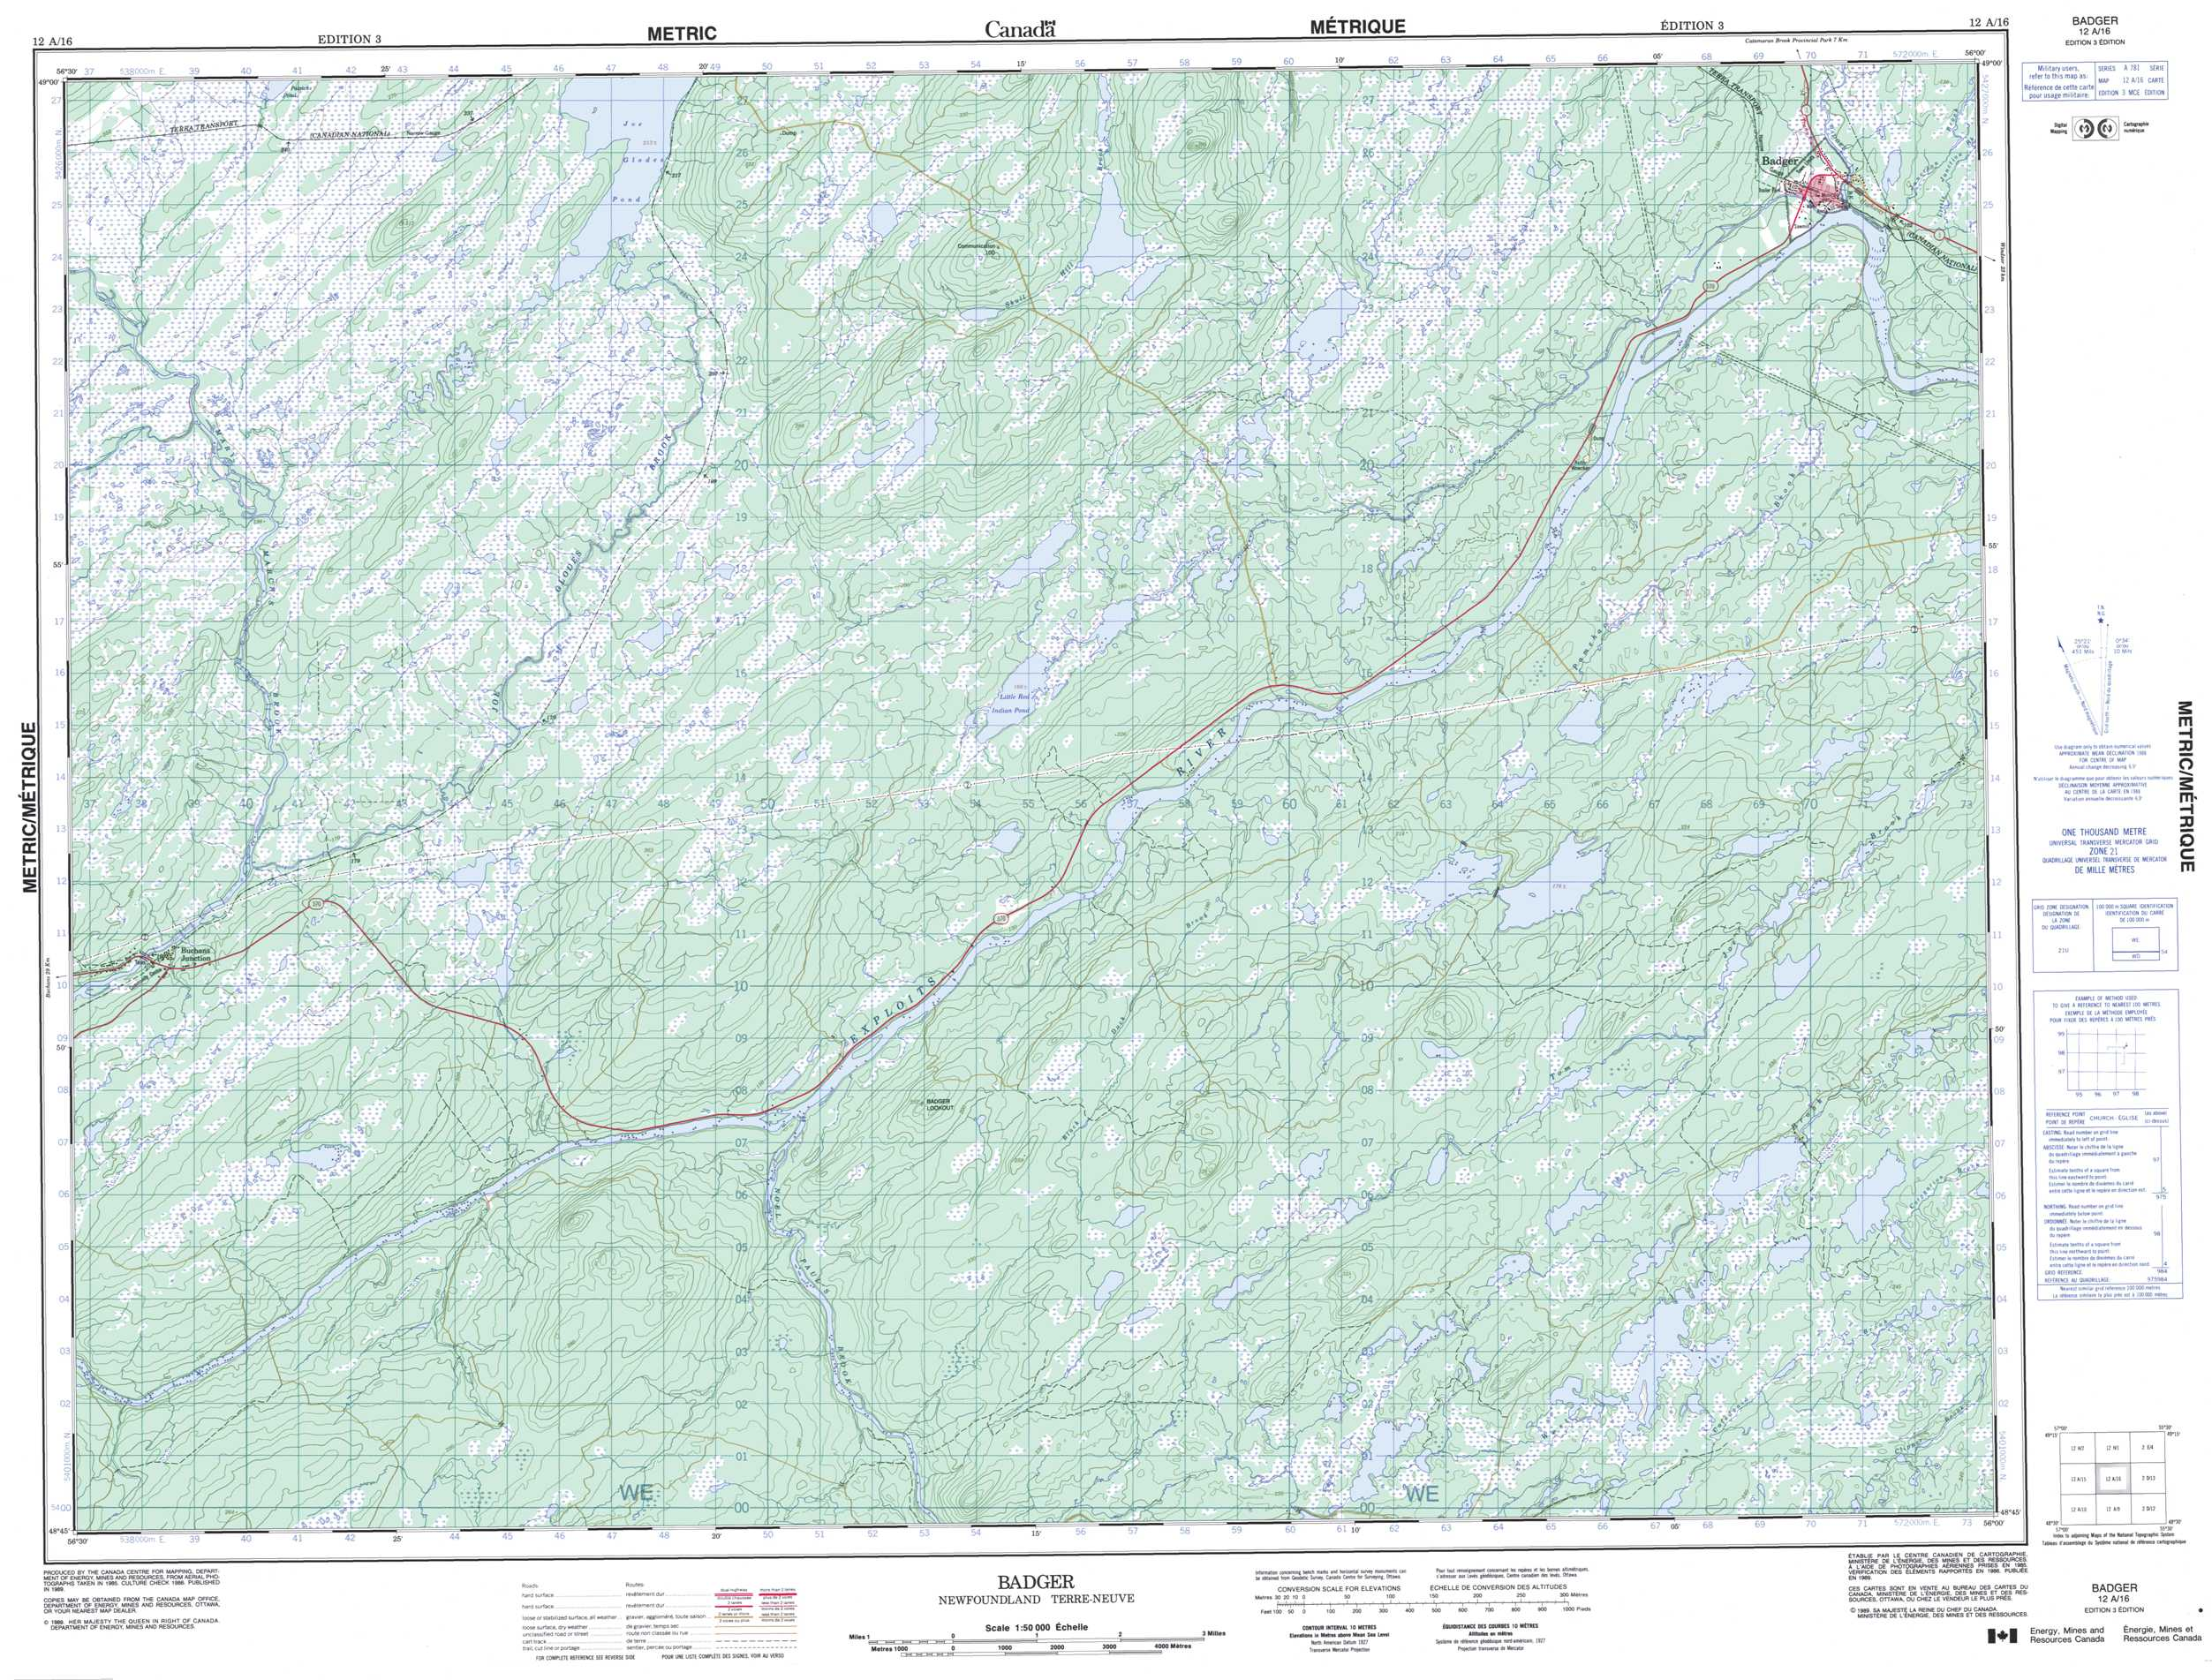 Buy Badger Topographic Map Nts Sheet 012a16 At 1 50 000 Scale